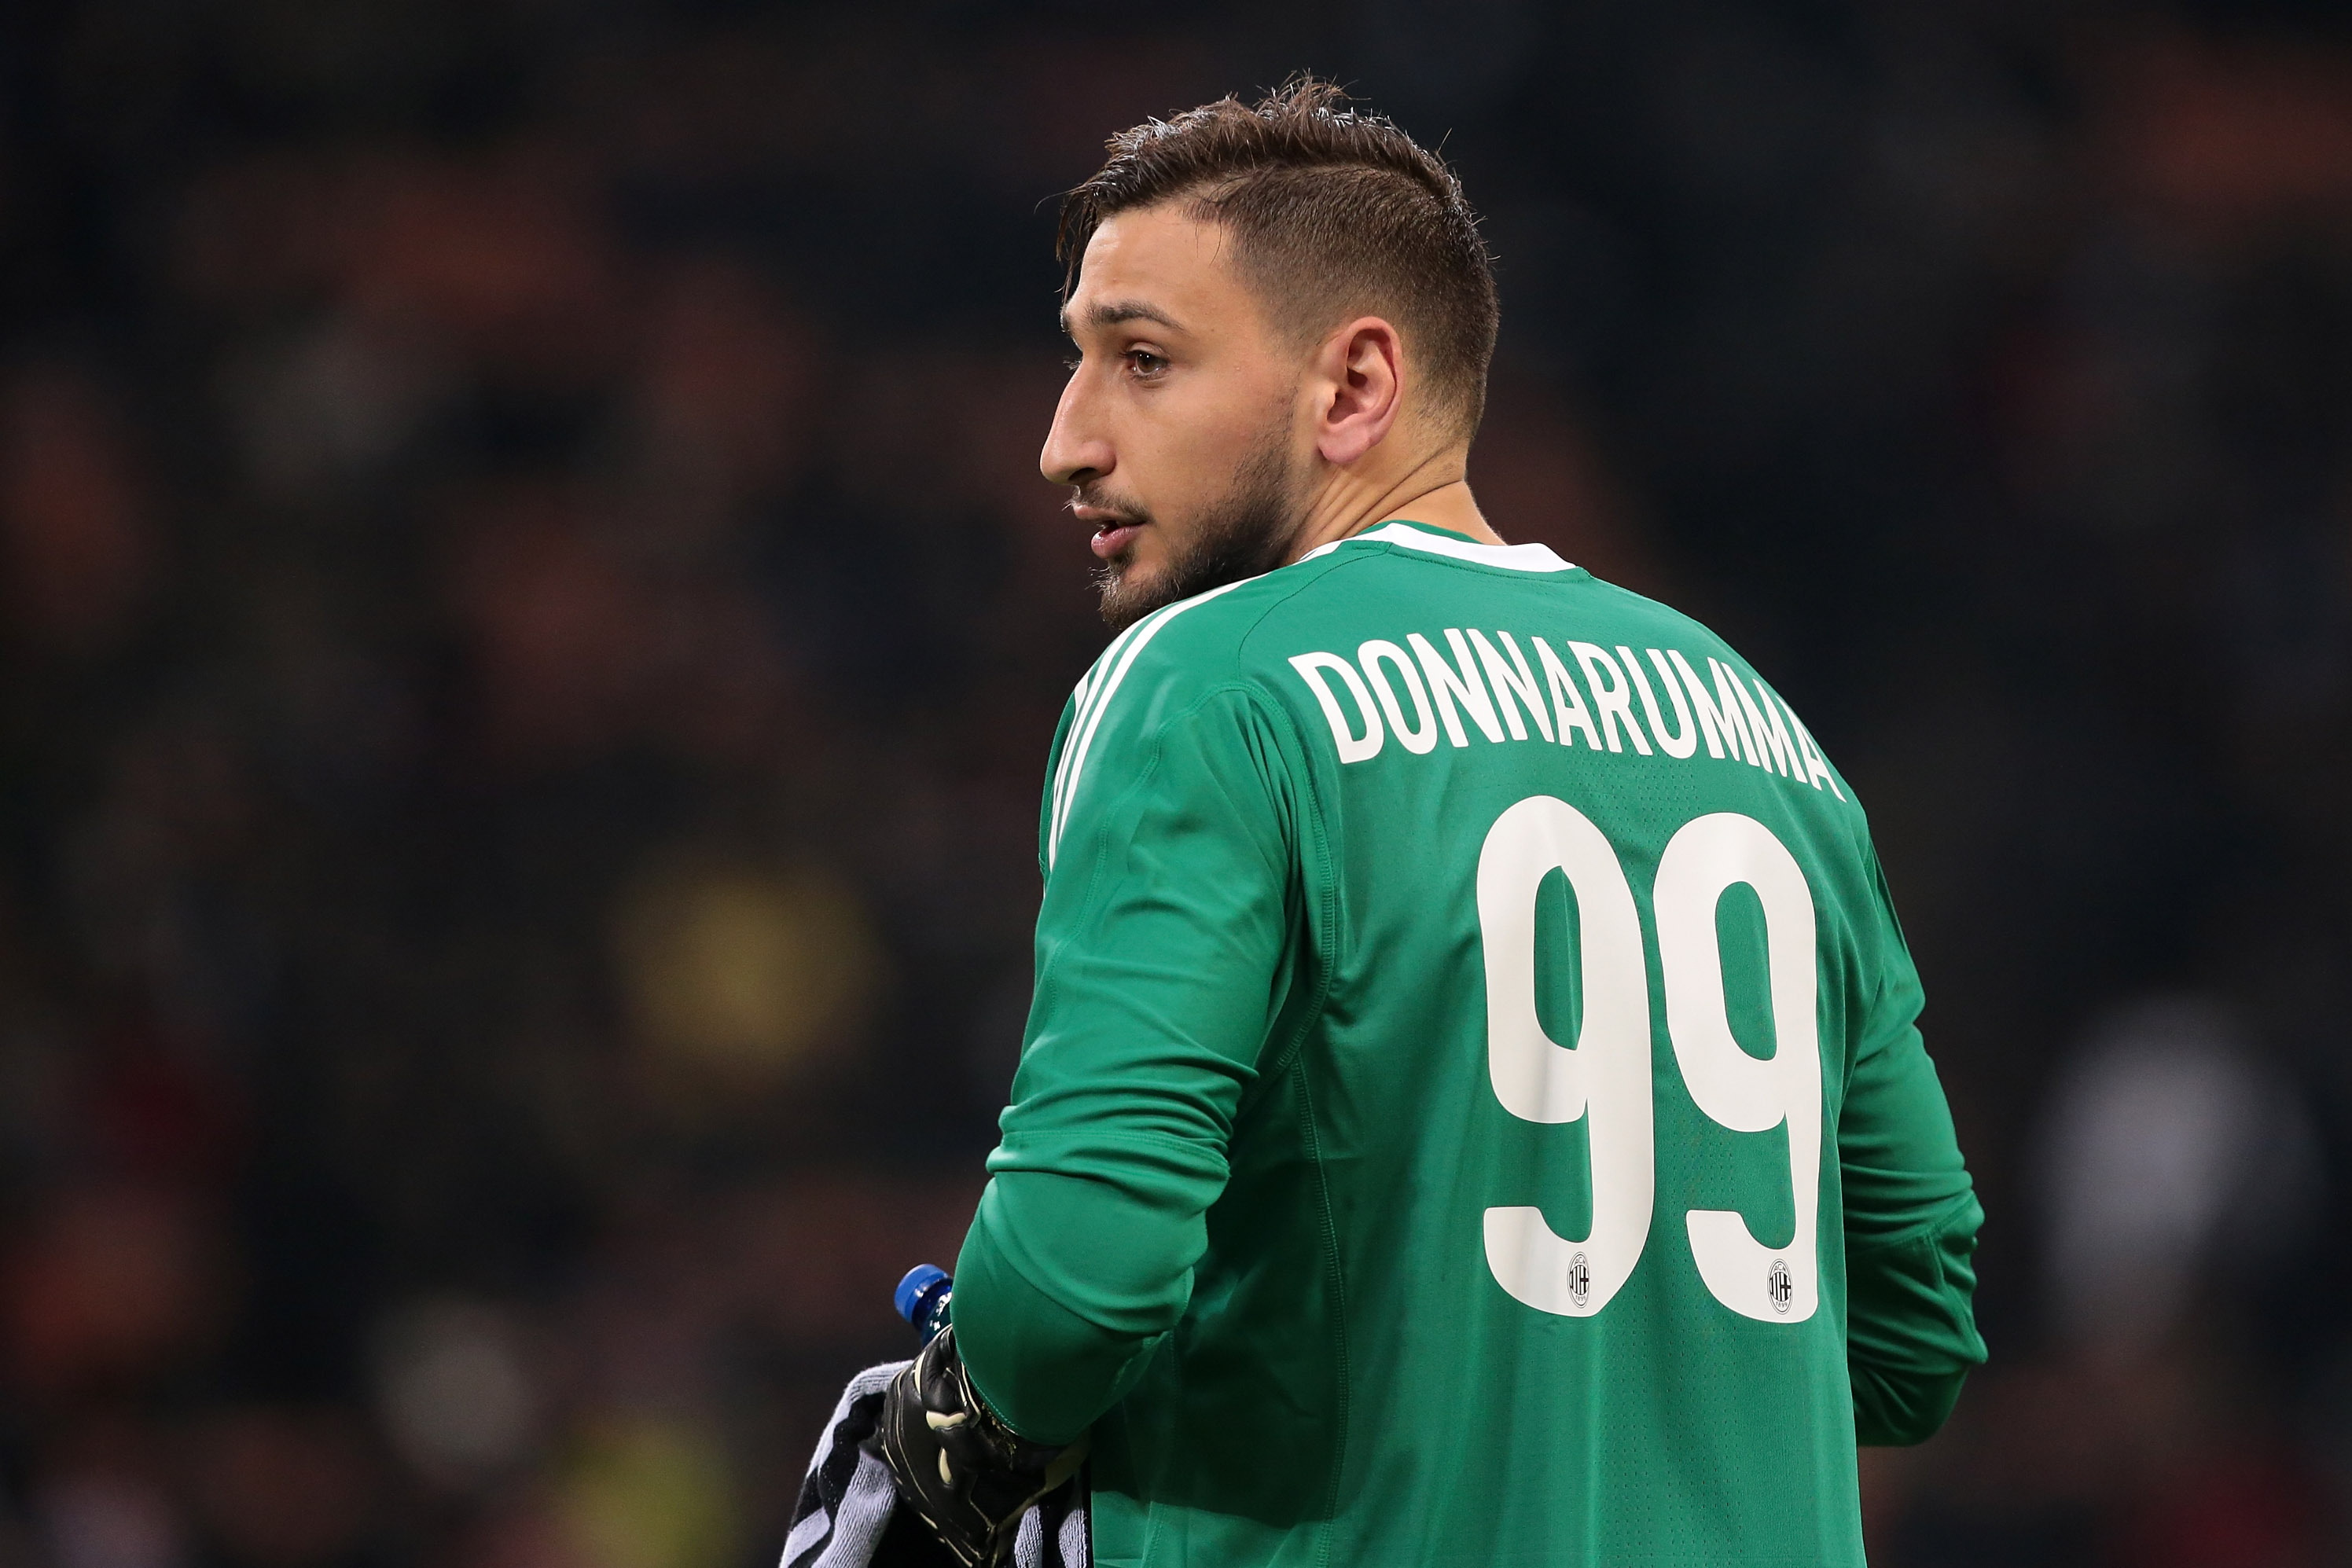 Gianluigi Donnarumma Reduced To Tears After Ac Milan Fan Protest Bleacher Report Latest News Videos And Highlights